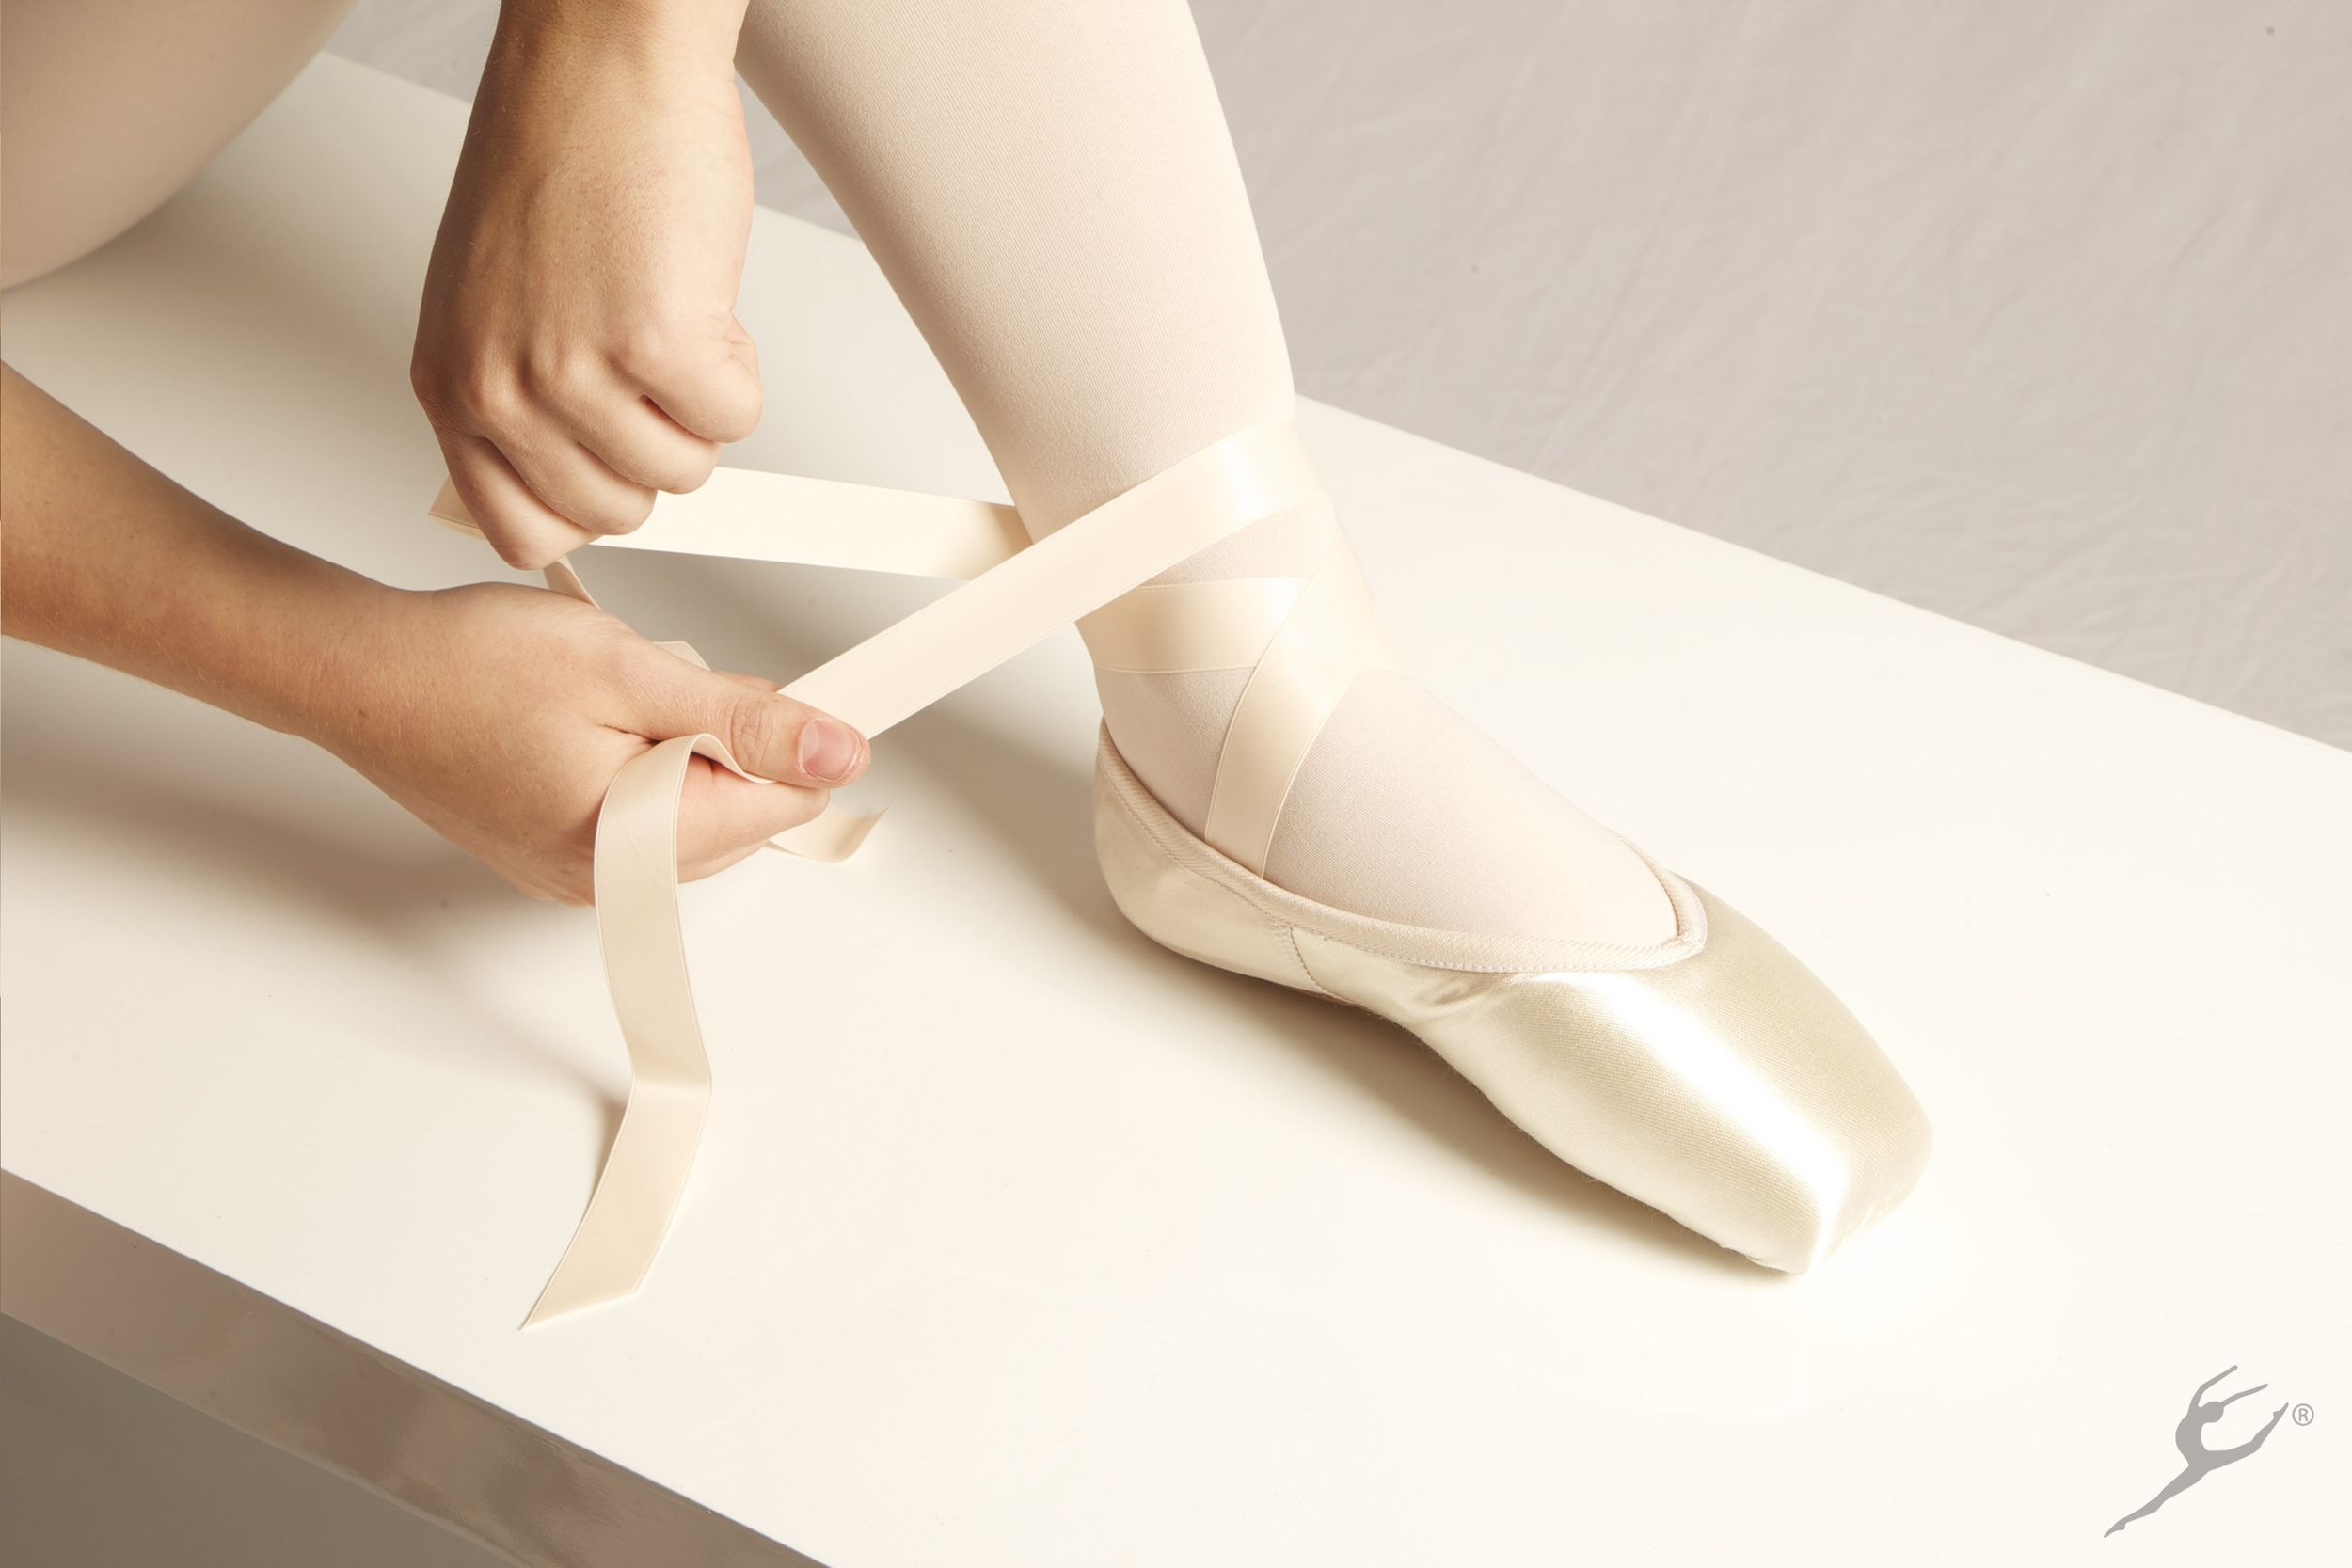 6: Repeat the process from the first ribbon, by wrapping the 2nd piece around the back of the ankle